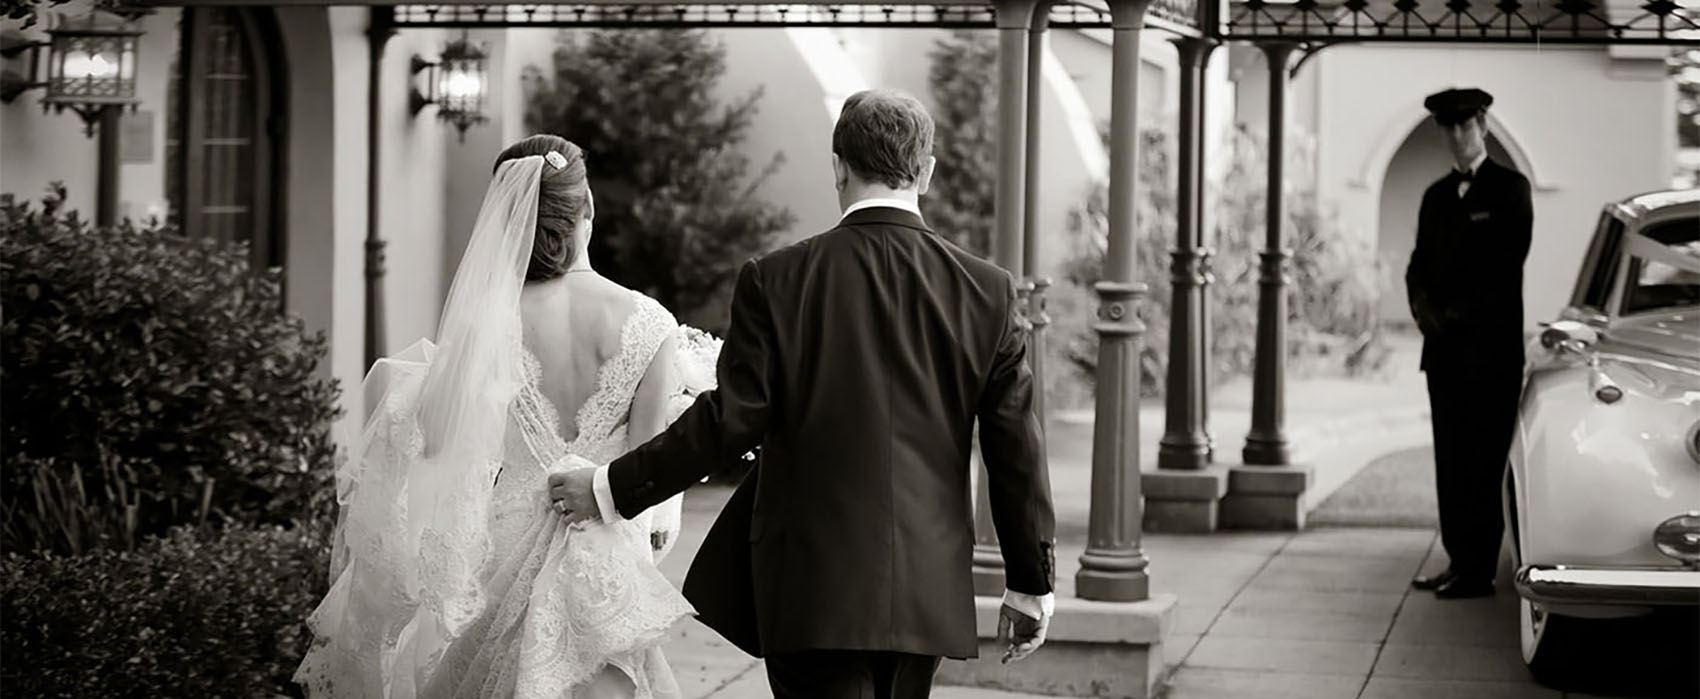 A bride and groom walking to their awaiting chauffeur and Rolls-Royce.